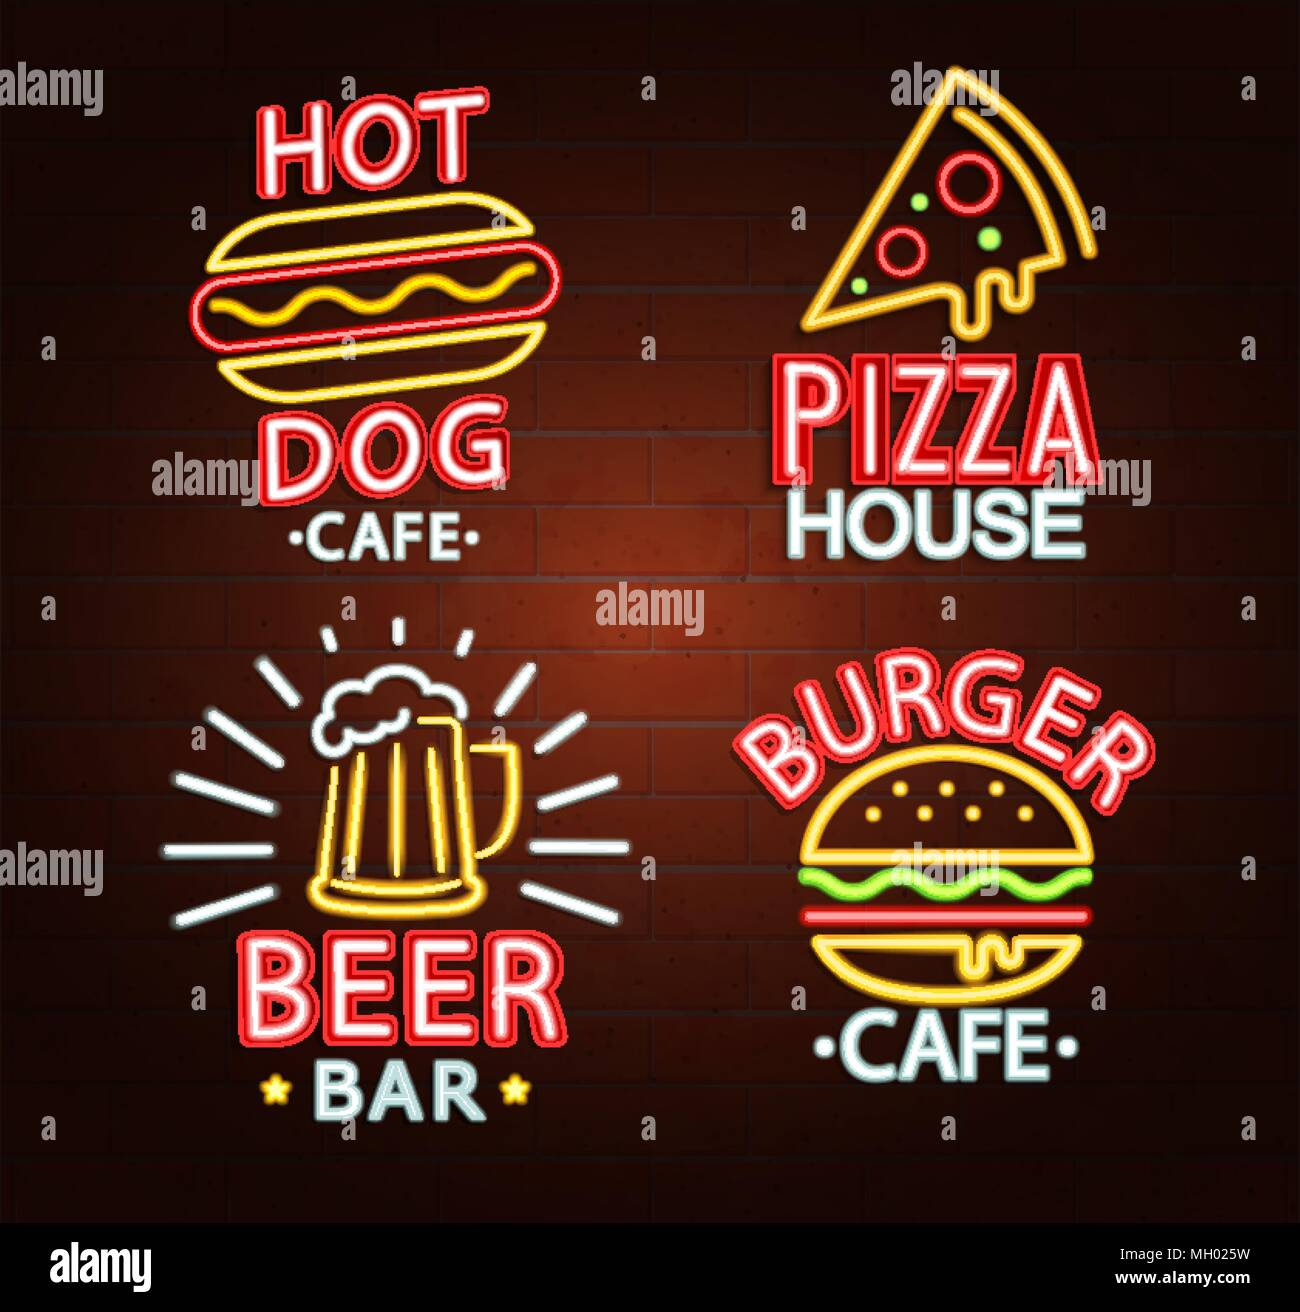 Set Of Neon Signs Of Beer Bar Hot Dog Cafe Pizza House Burger Cafe Bright Signboard Light Banner Neons Logos Emblems And Symbols Vector Stock Vector Image Art Alamy